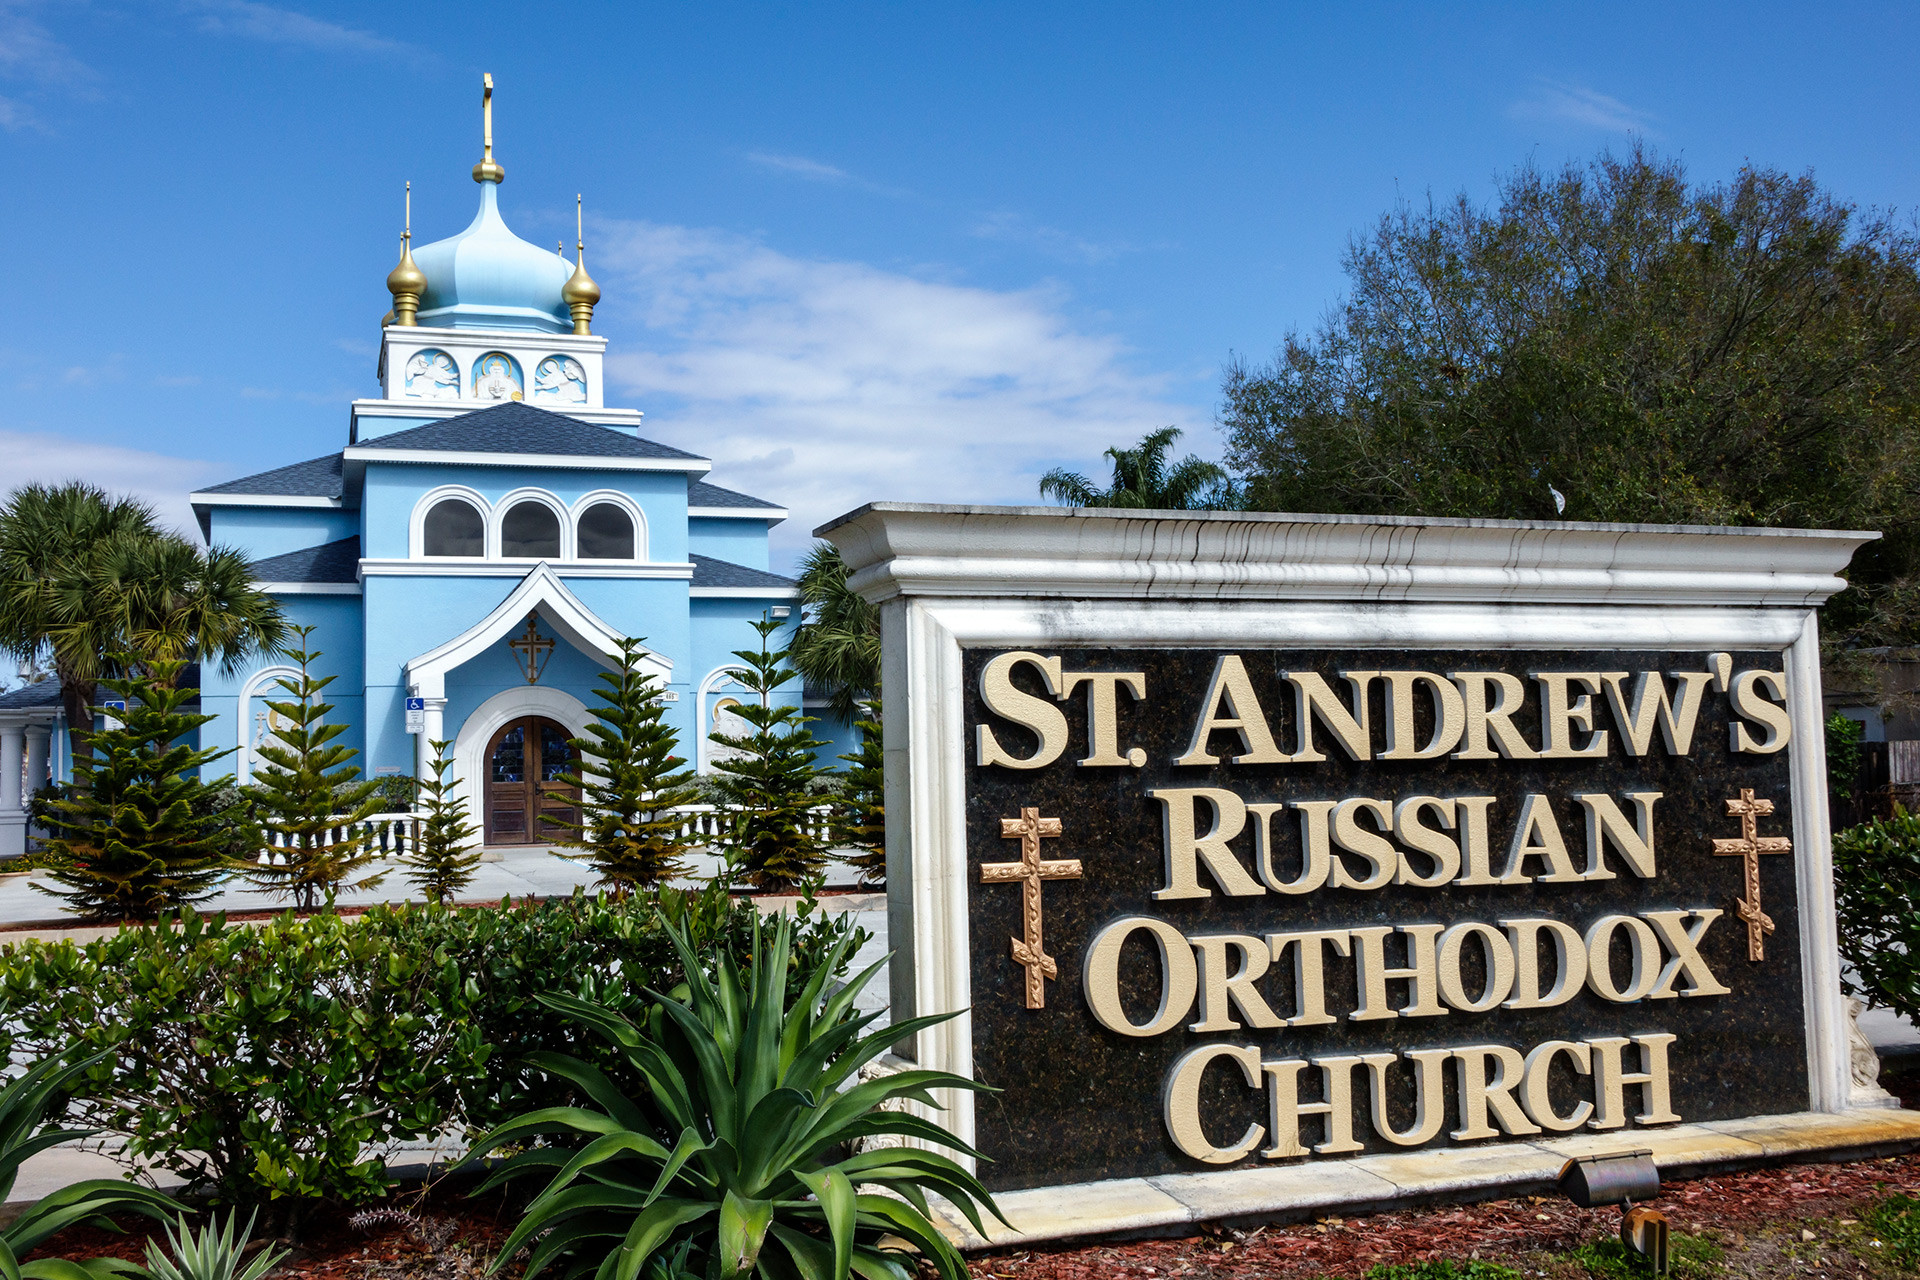 Saint Andrew's Russian Orthodox Church in America